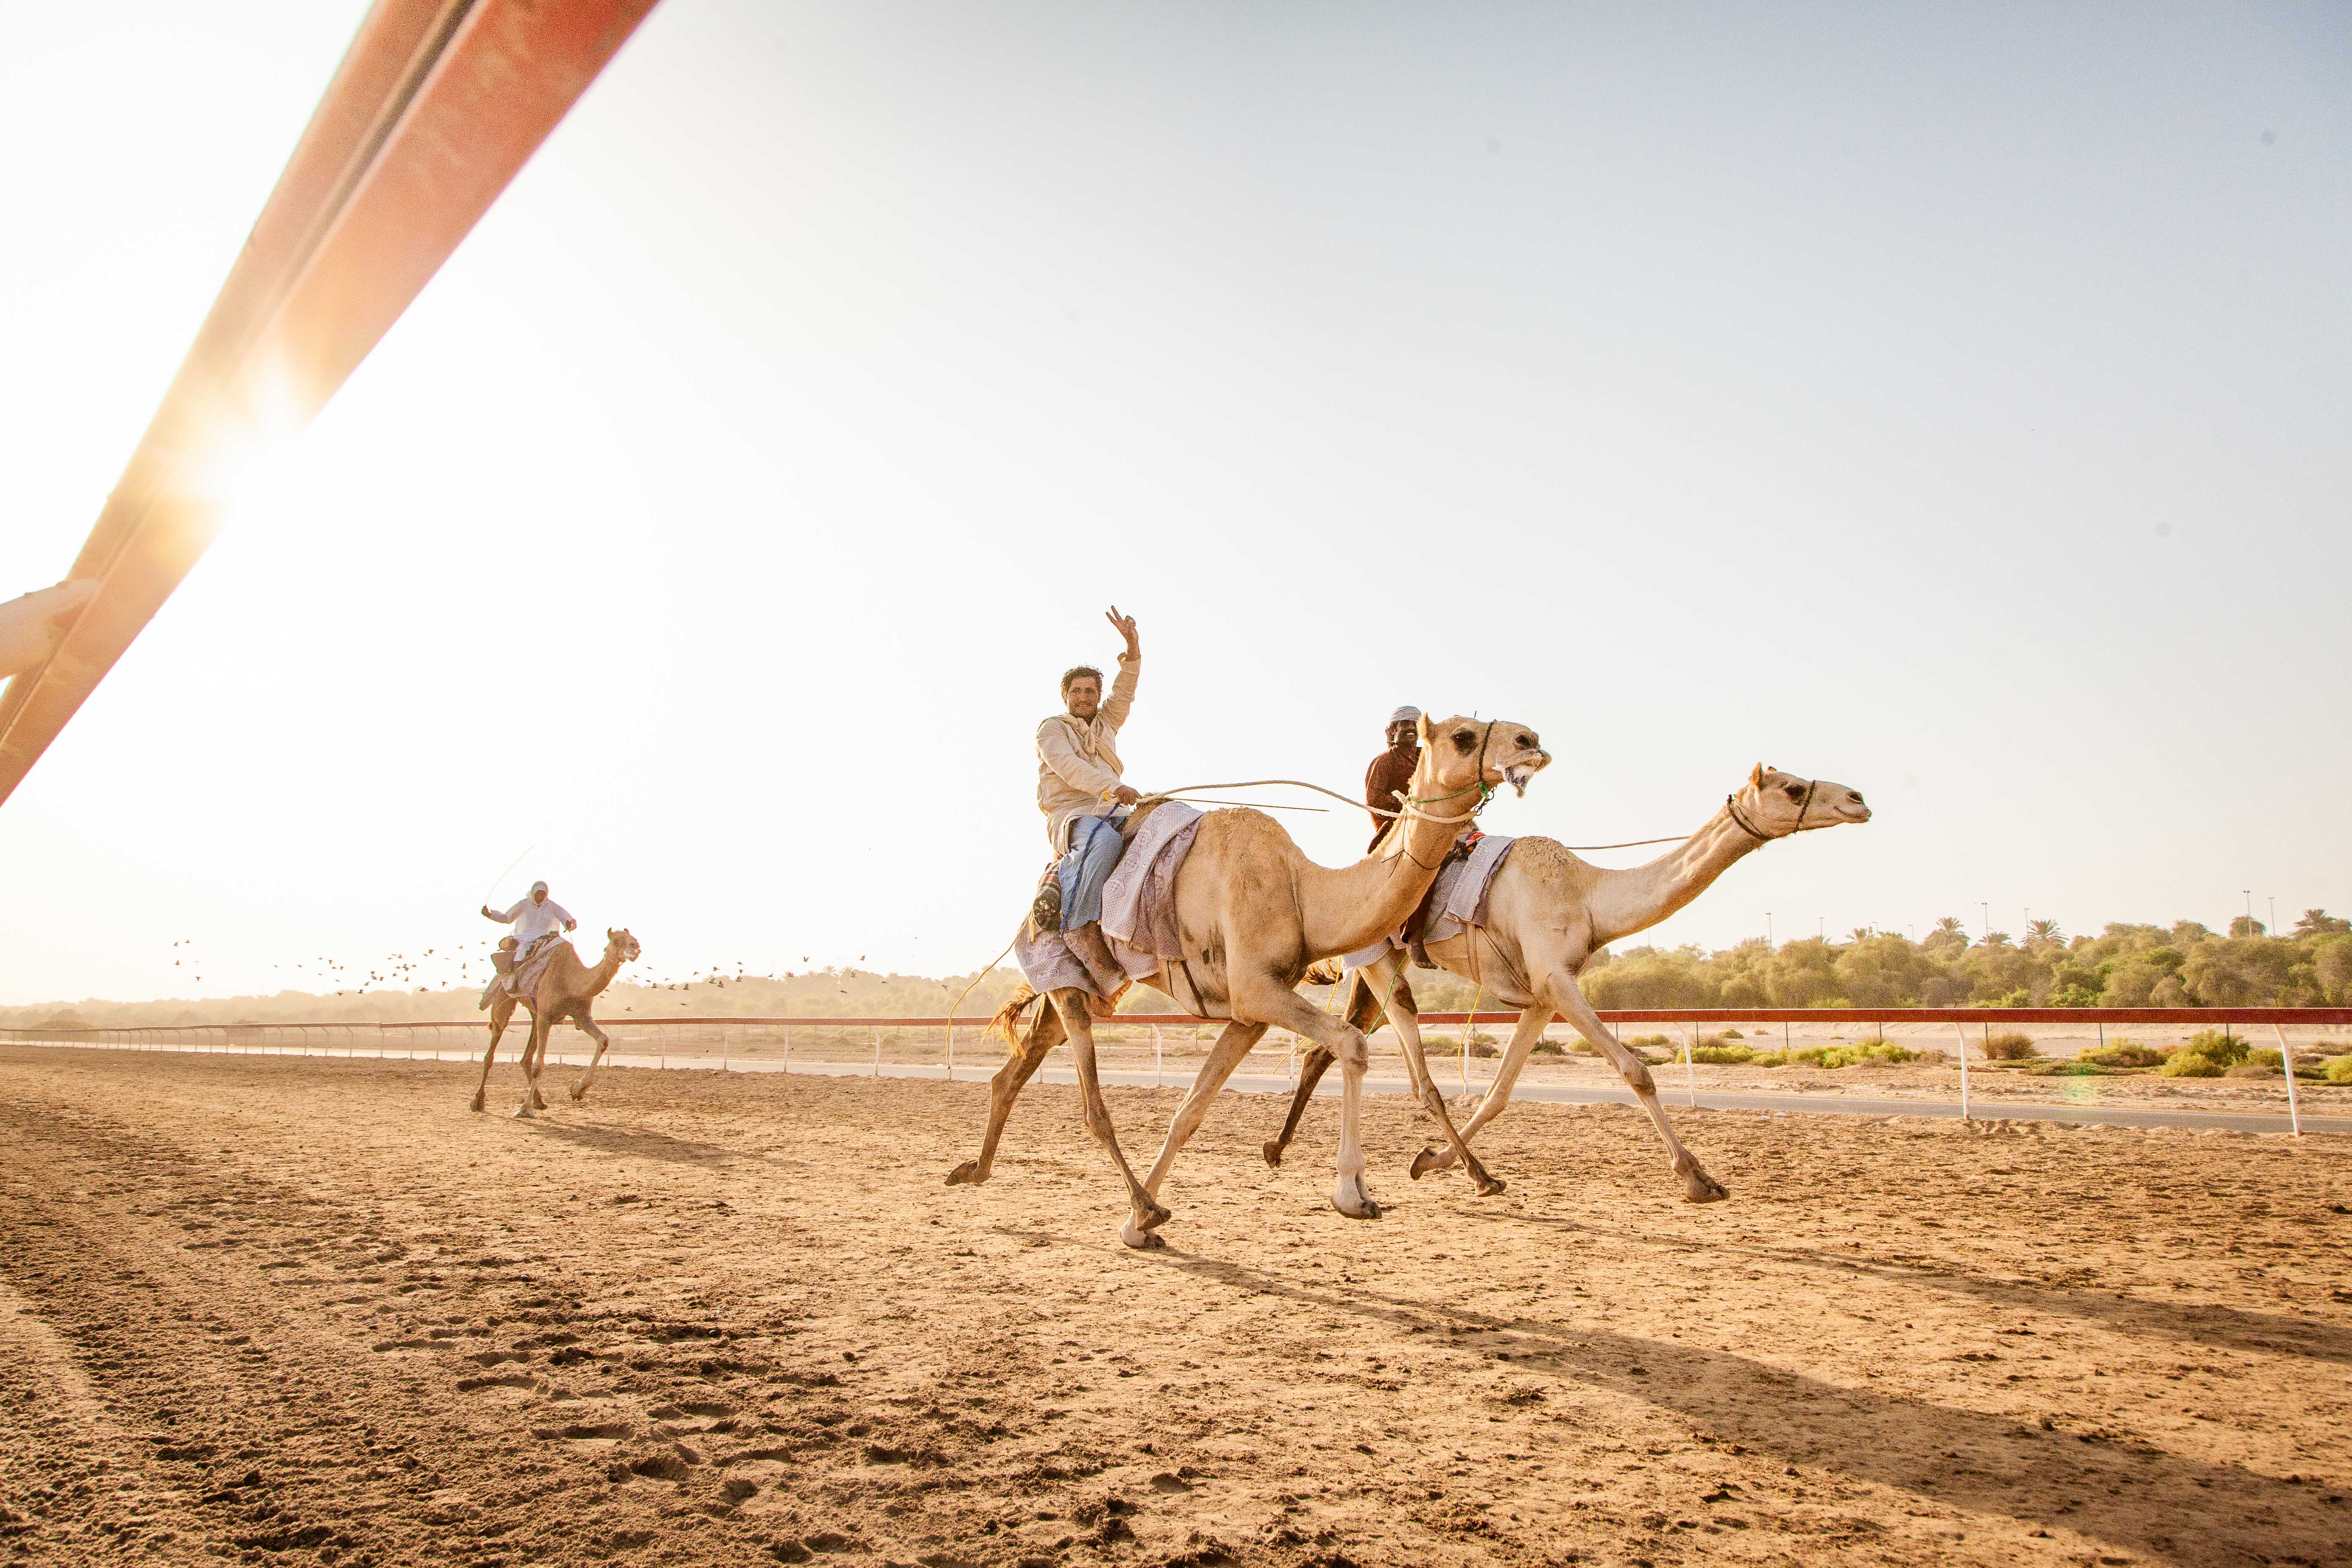 A morning at the camel race track, The United Arab of Emirates